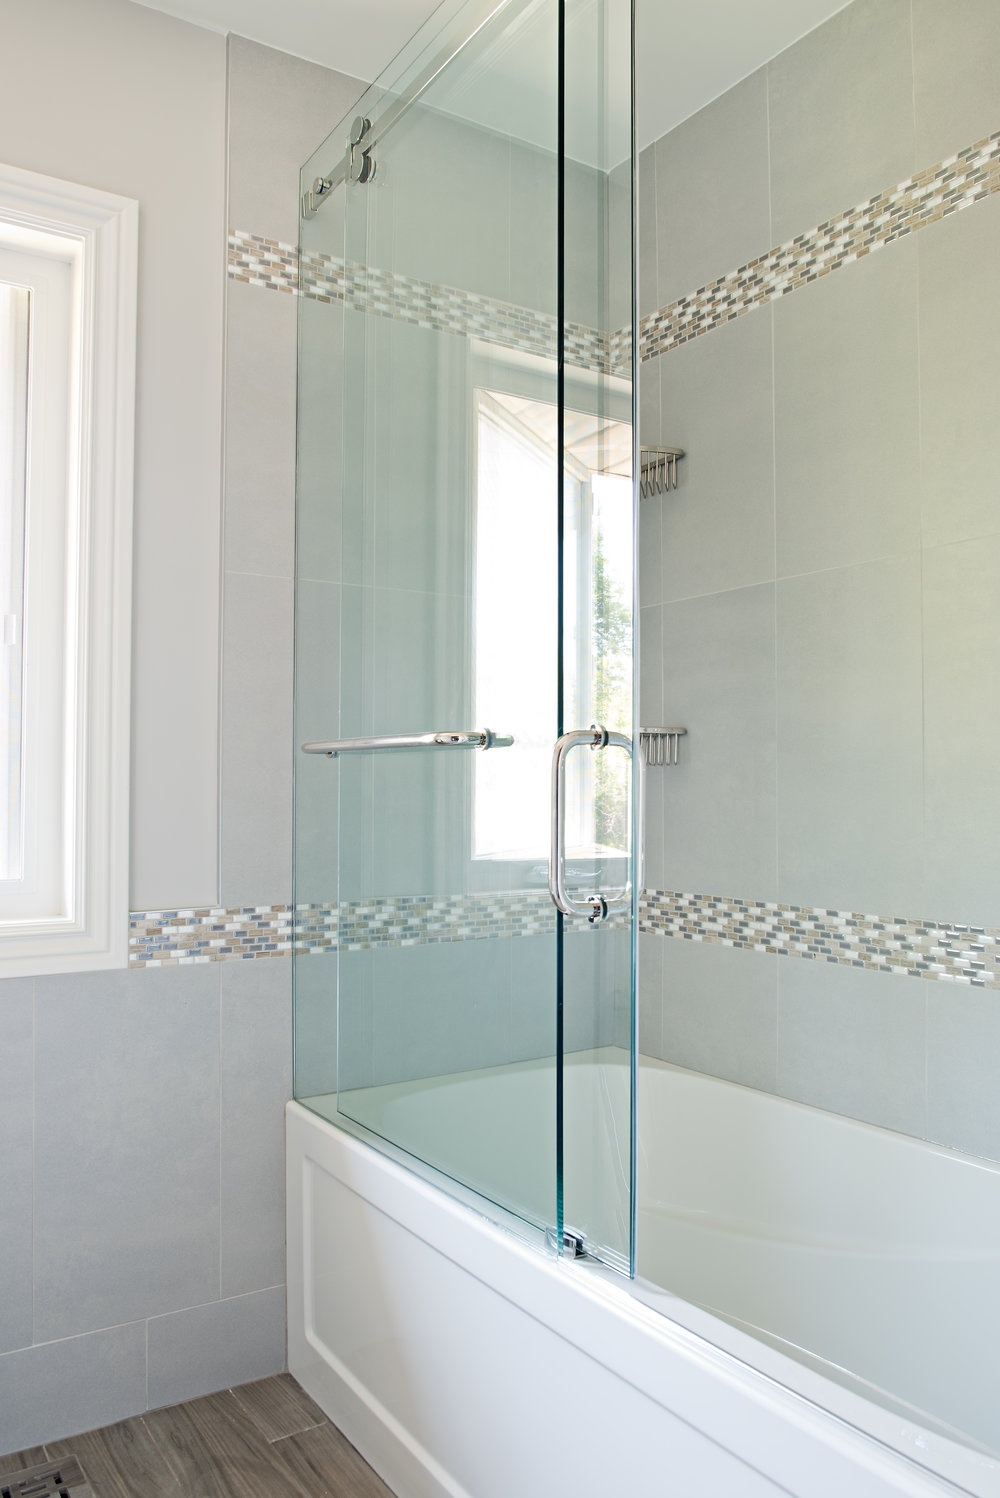 Bathroom Room Shower Doors.jpg